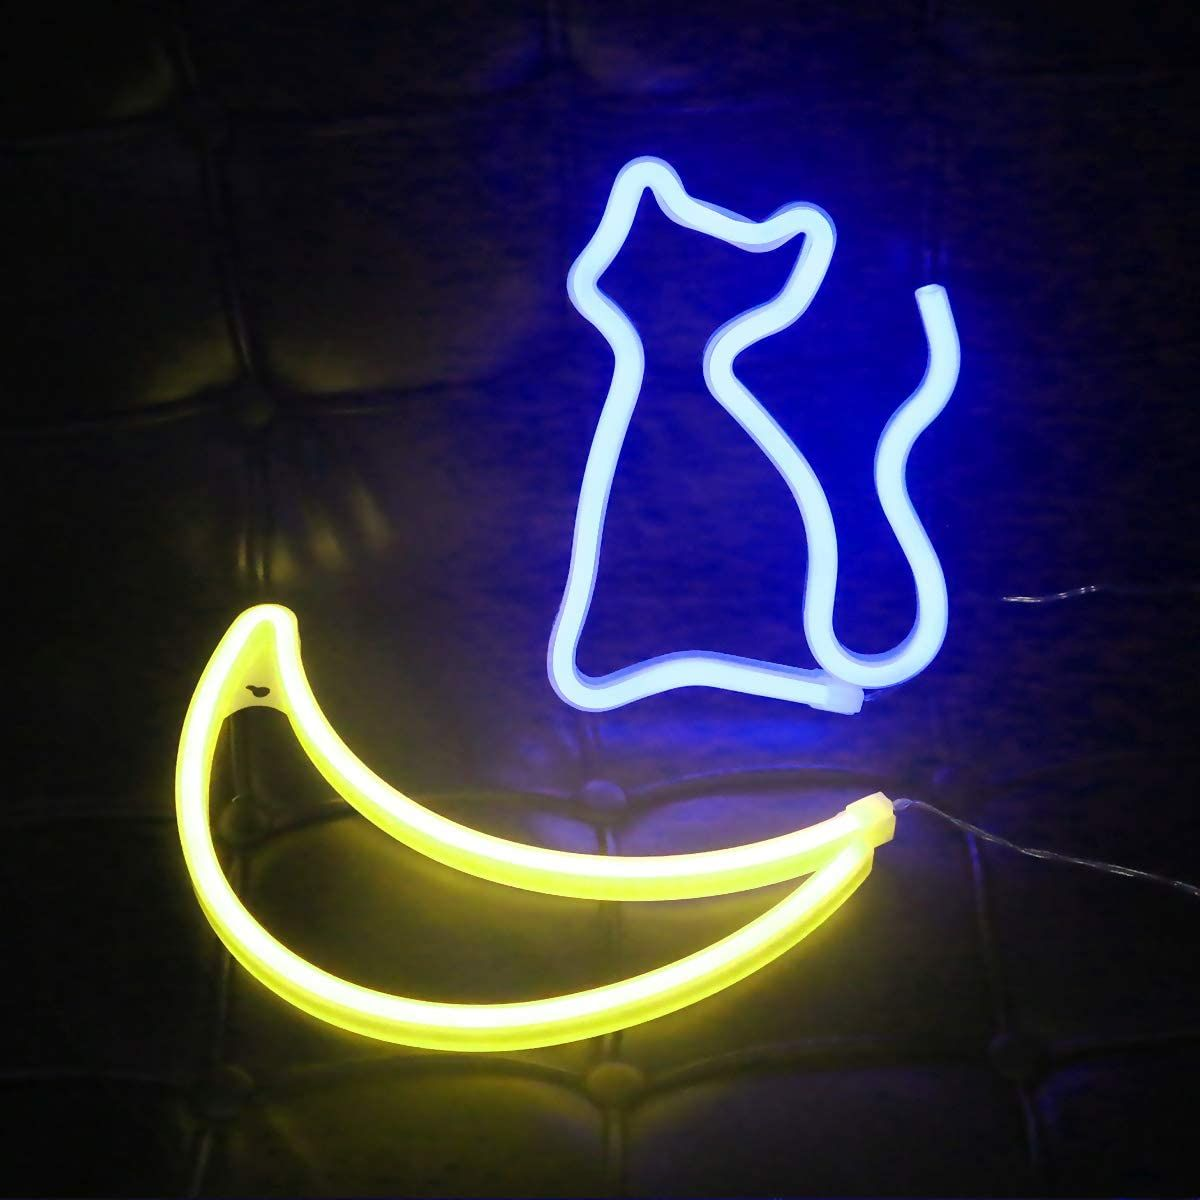 Cute Neon LED Signs for Wall Decor, Art Decor, Home Decor